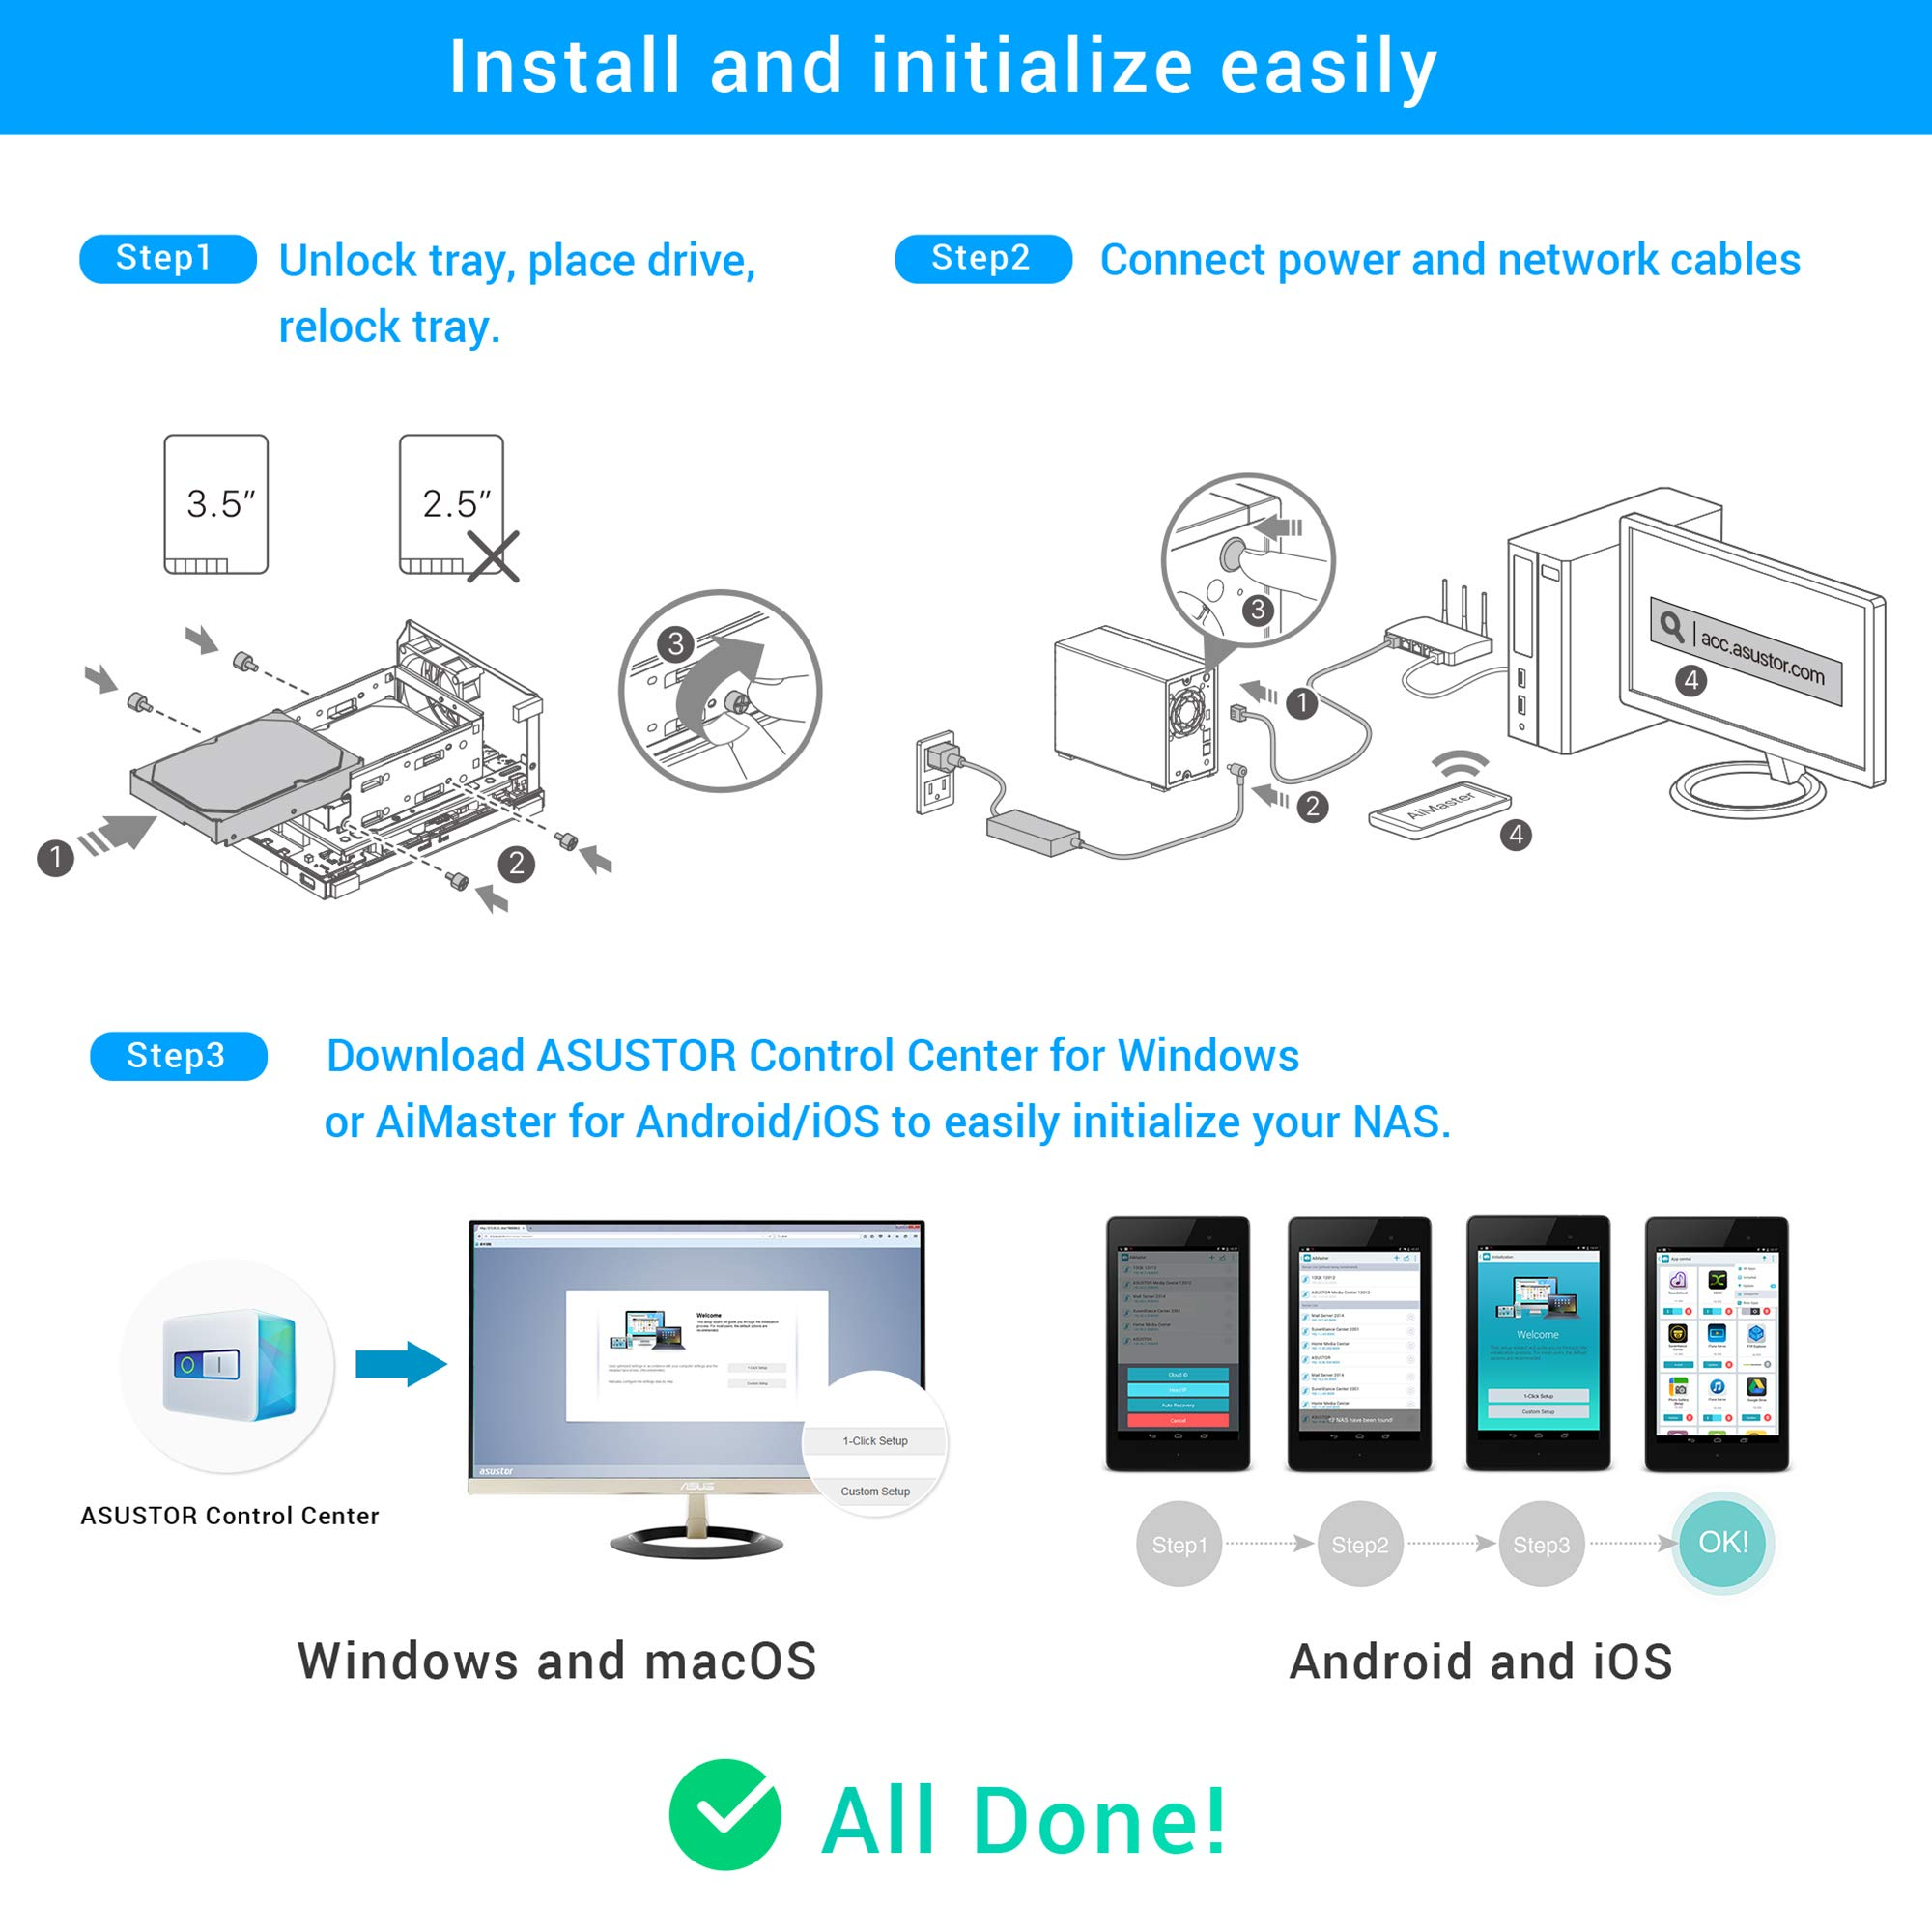 Asustor AS1002T v2   Network Attached Storage + Free exFAT License   1.6GHz Dual-Core, 512MB RAM   Personal Private Cloud   Home Media Server (2 Bay Diskless NAS) by Asustor (Image #5)